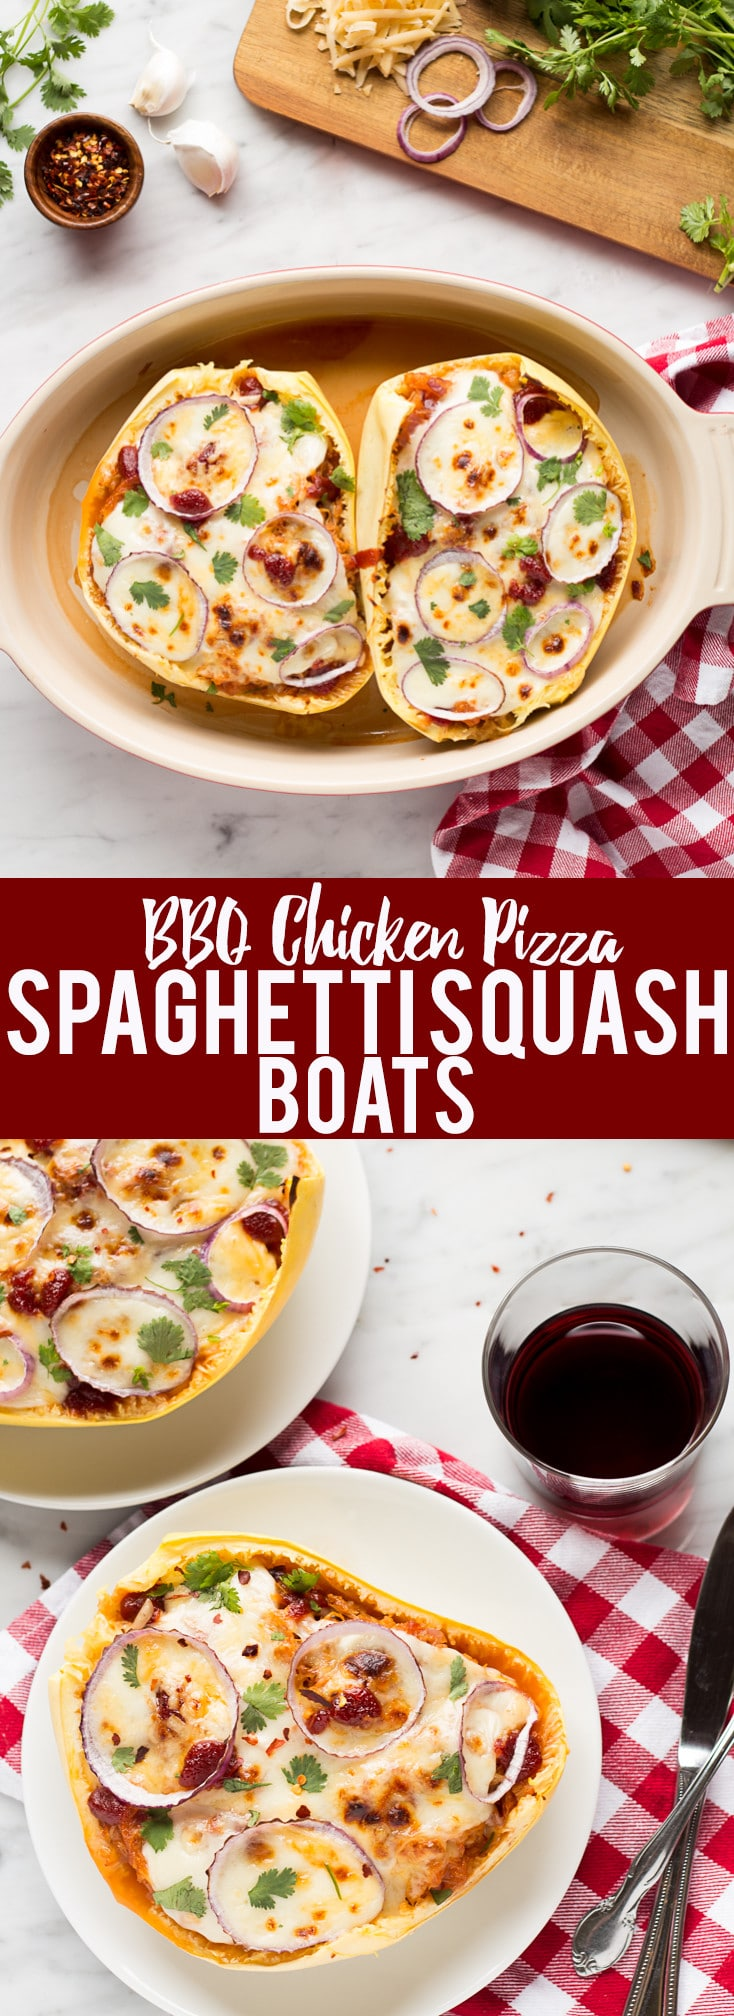 These BBQ Chicken Pizza Spaghetti Squash boats have all the delicious flavors of a BBQ Chicken Pizza - sweet and savory BBQ chicken, red onions and two kinds of cheese, stuffed in a spaghetti squash boat!